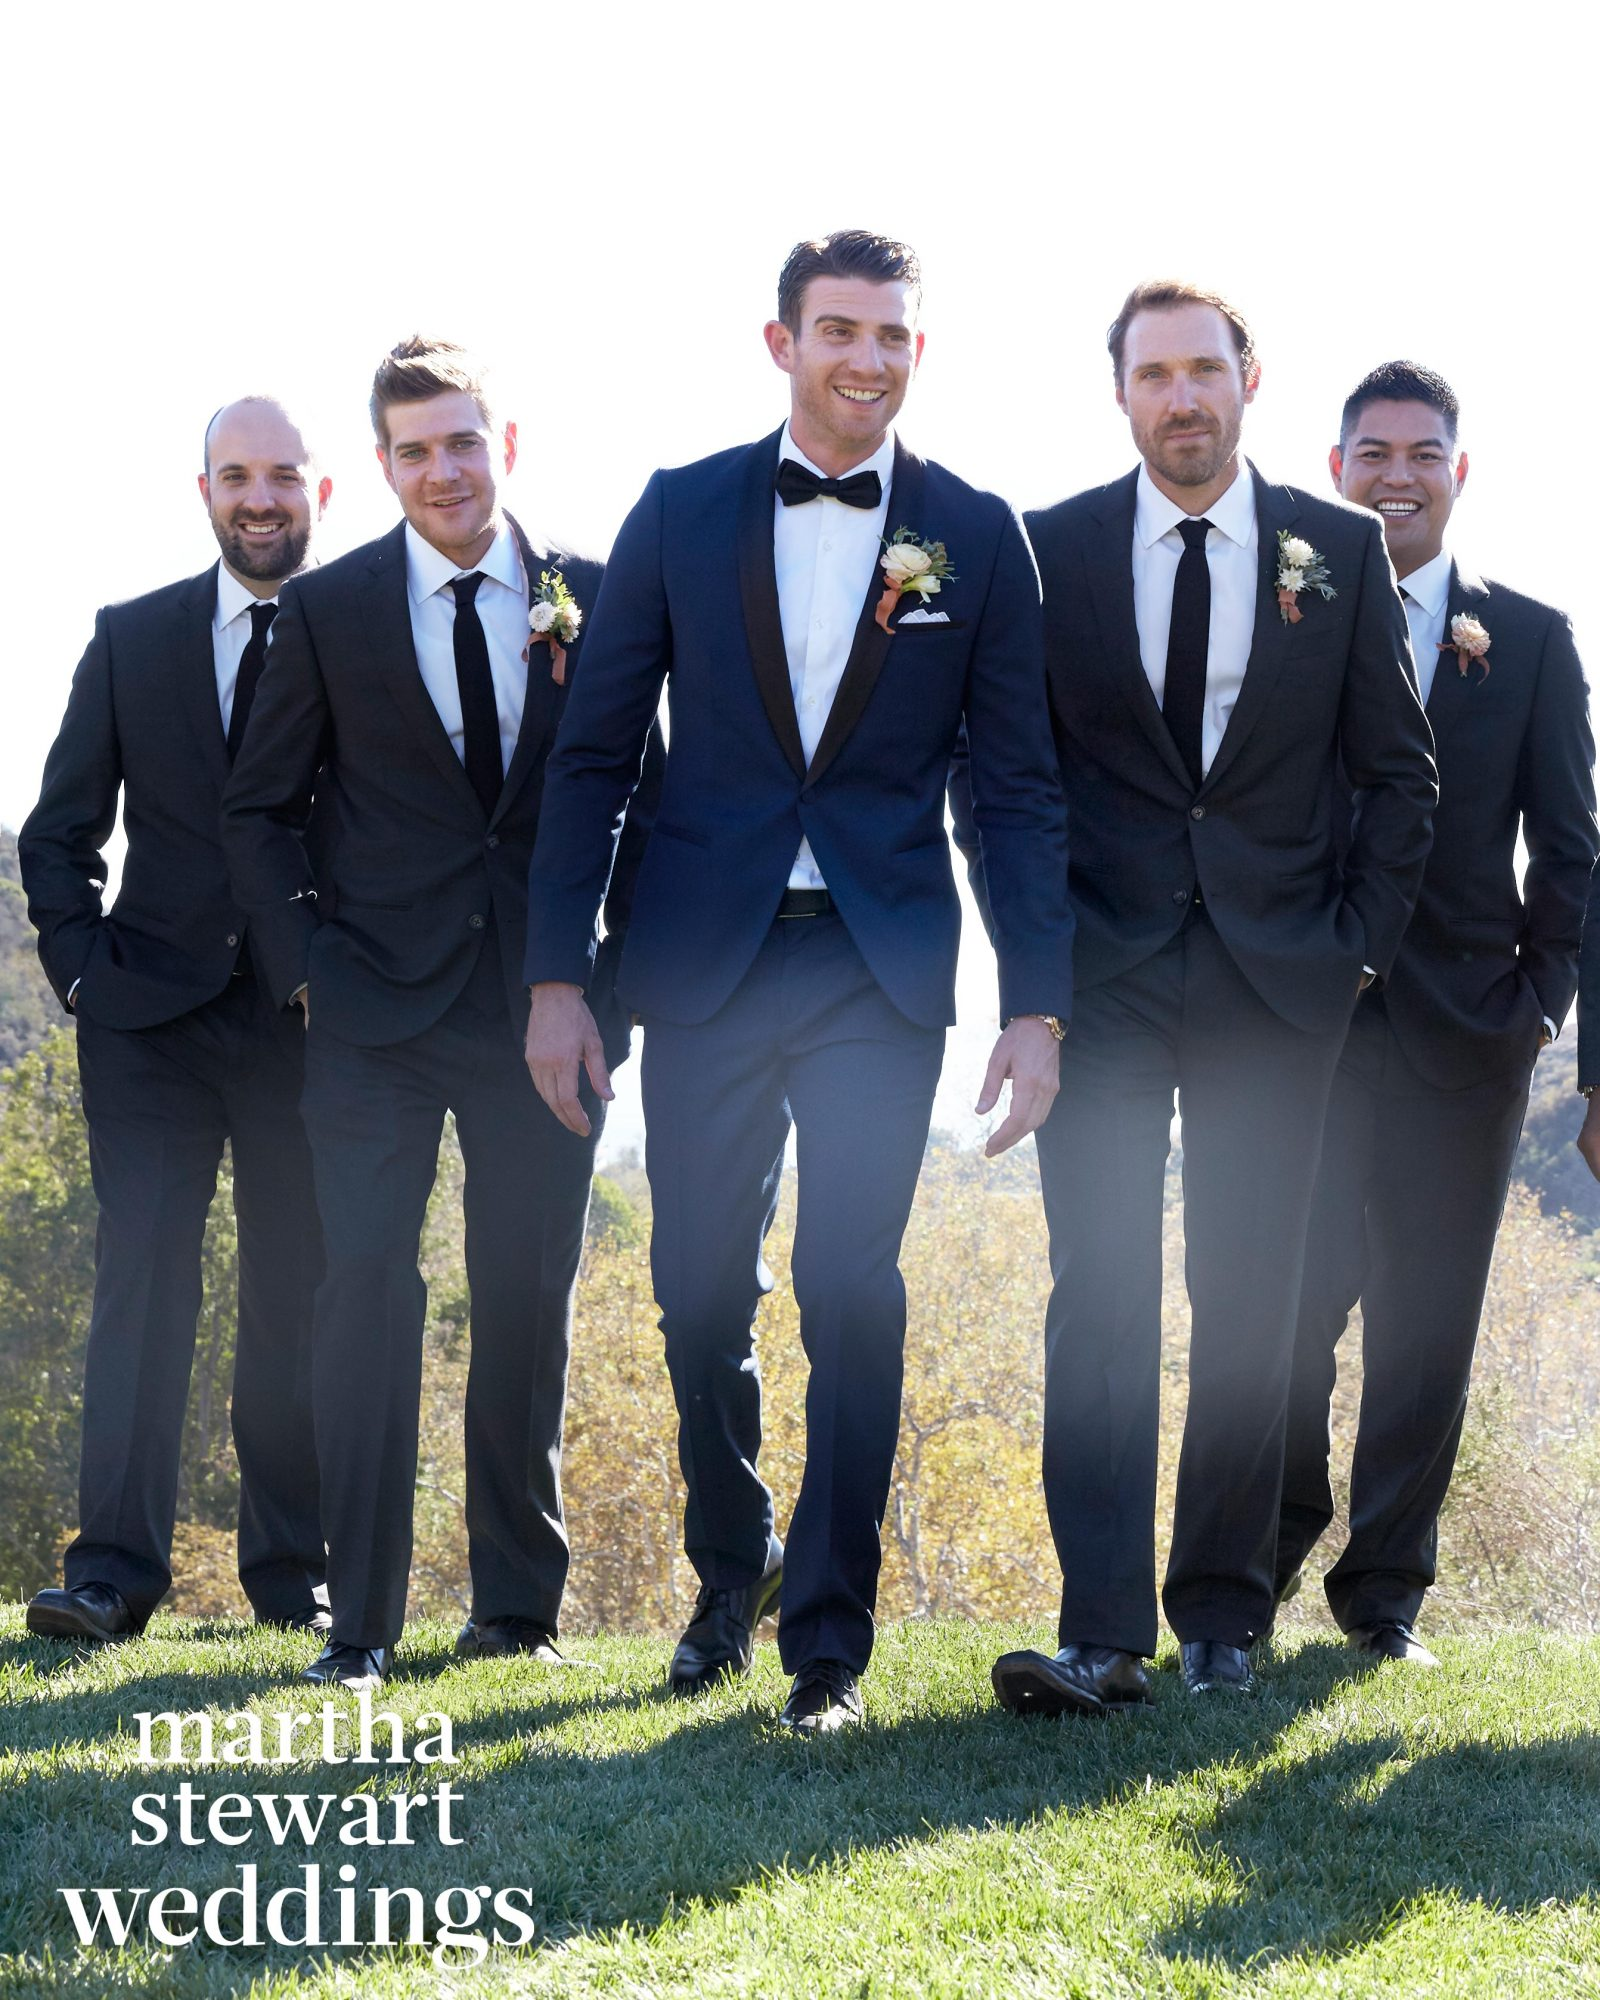 jamie-bryan-wedding-21-wedding-party-groomsmen-2093-d112664.jpg